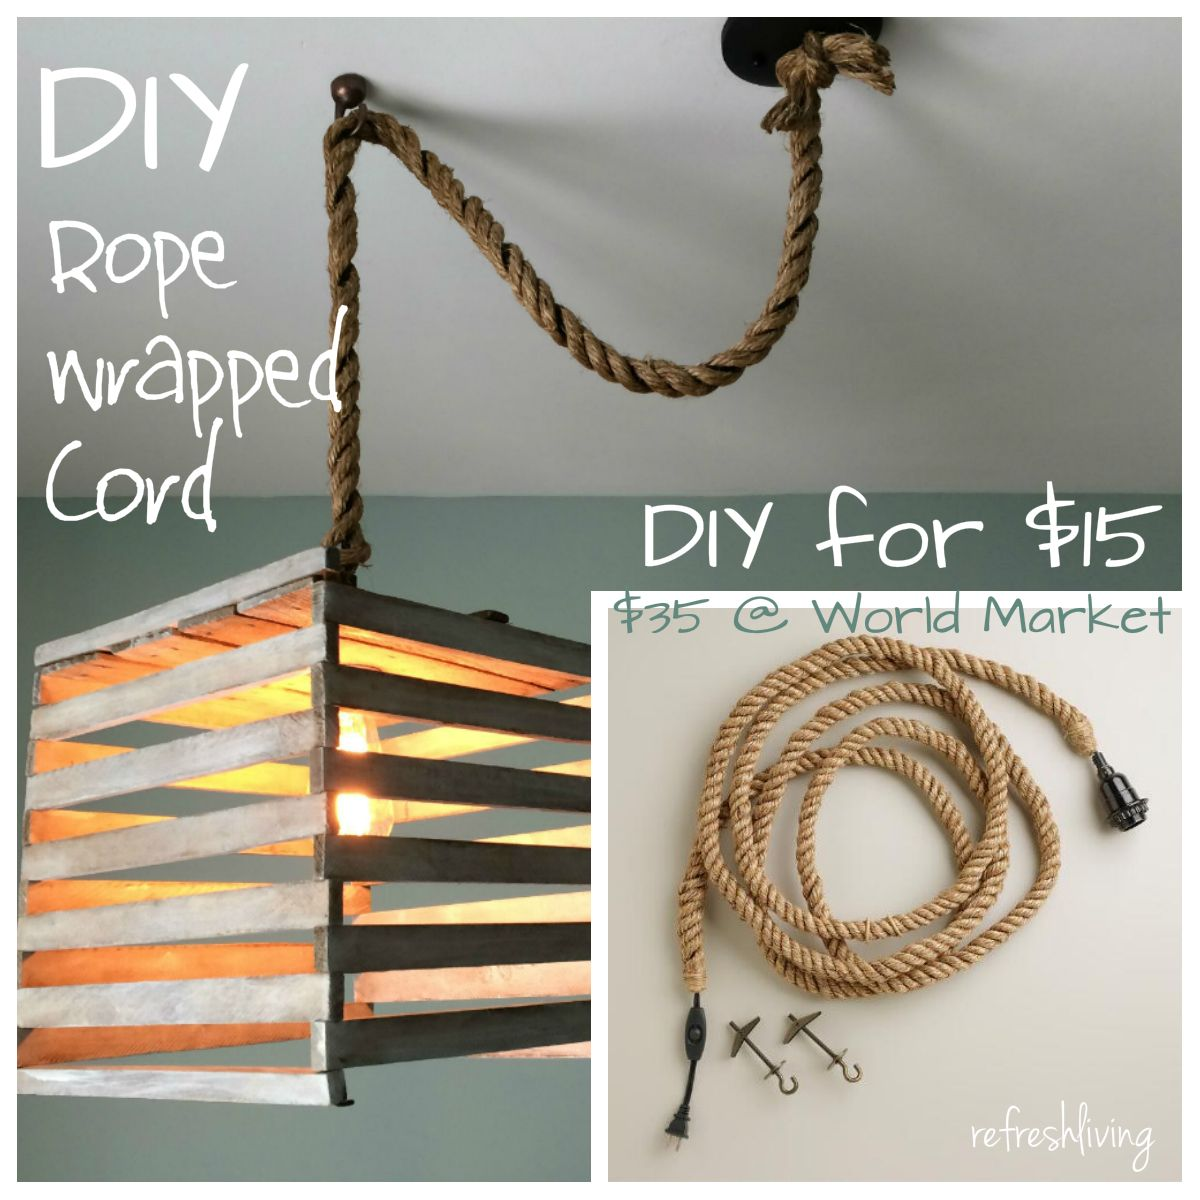 DIY Rope Pendant Cord | Egg crates, Life happens and Pendant lighting